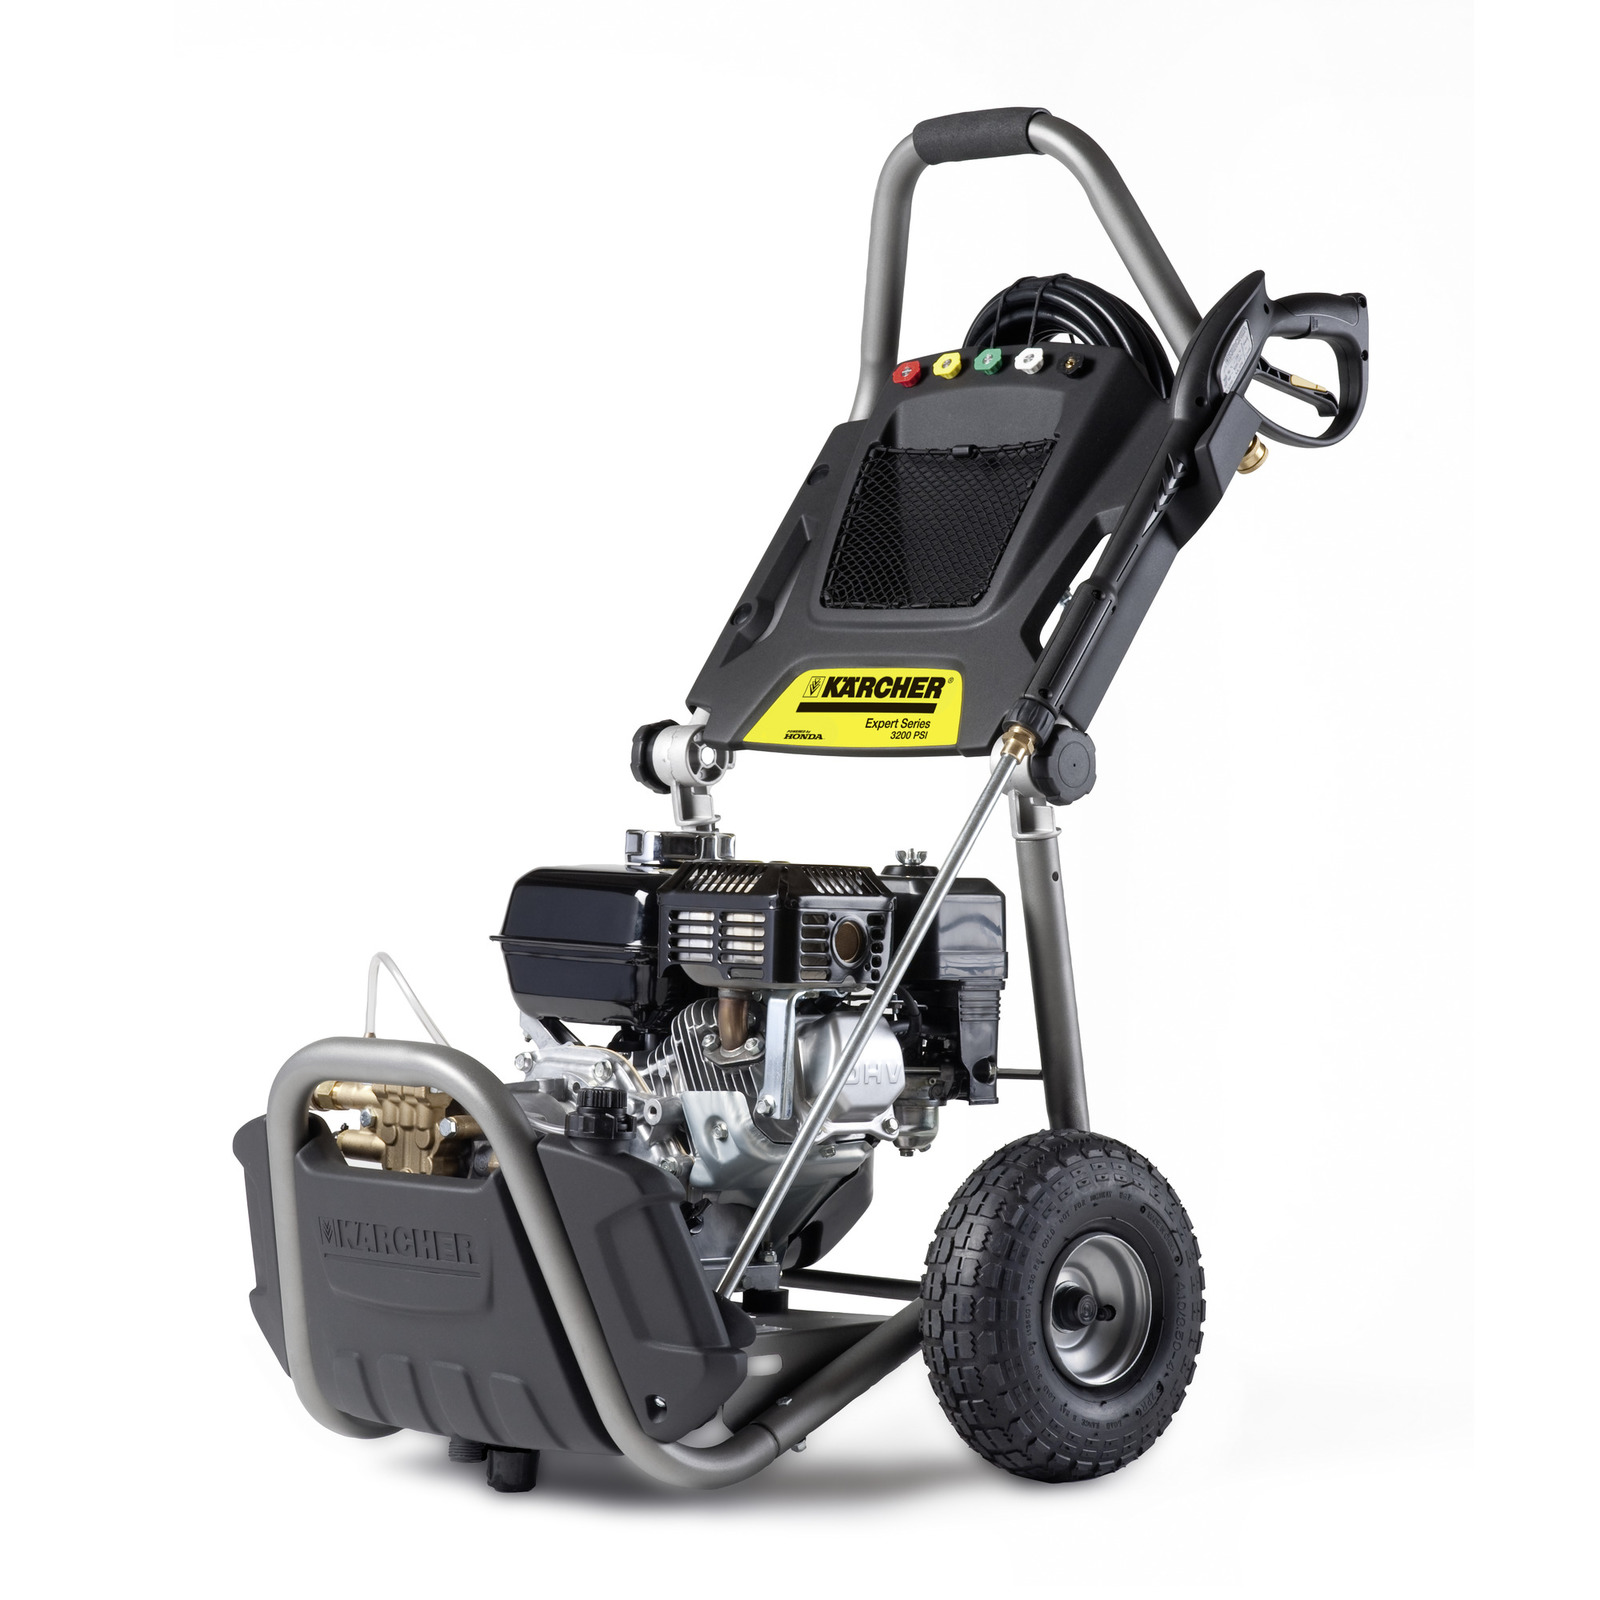 G 3200 Xh Karcher Nz